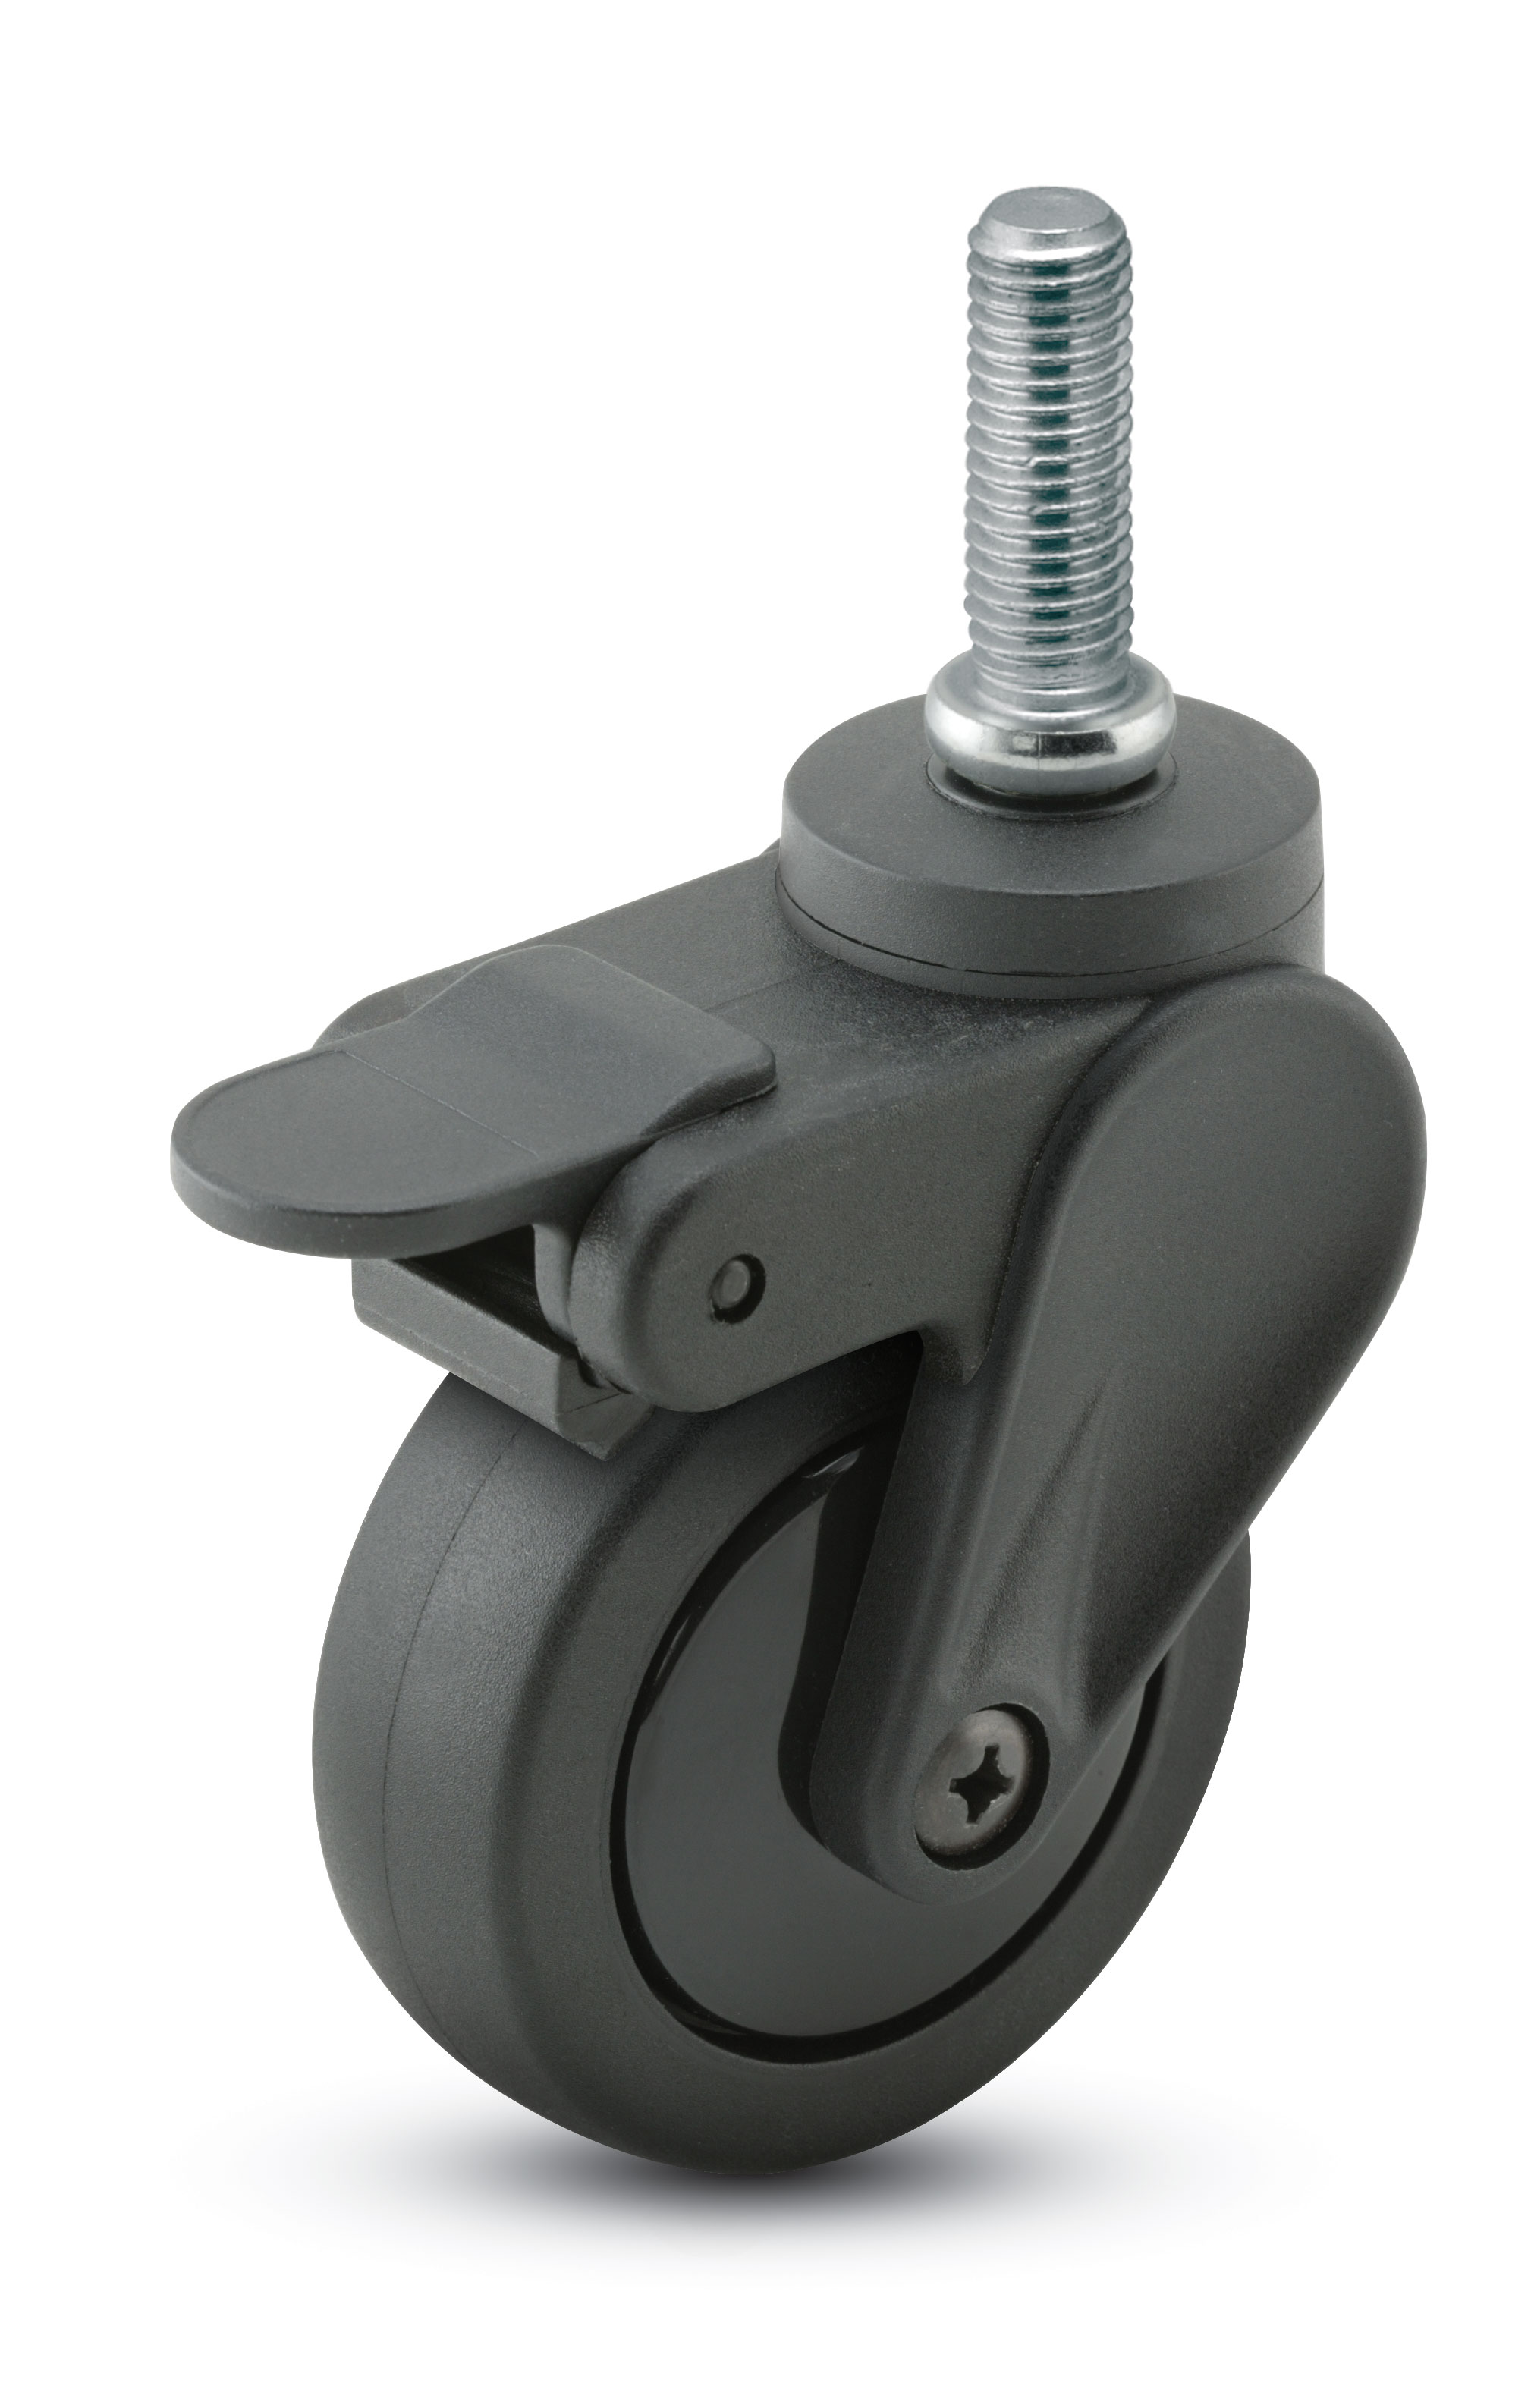 "Caster; Swivel; 4"" x 15/16""; PolyU on PolyO (Bk/Bk); Threaded Stem (3/8""-16TPI x 3/4""); Black GFN; Delrin  Bushing; 125#; Pedal Brake (65515)"